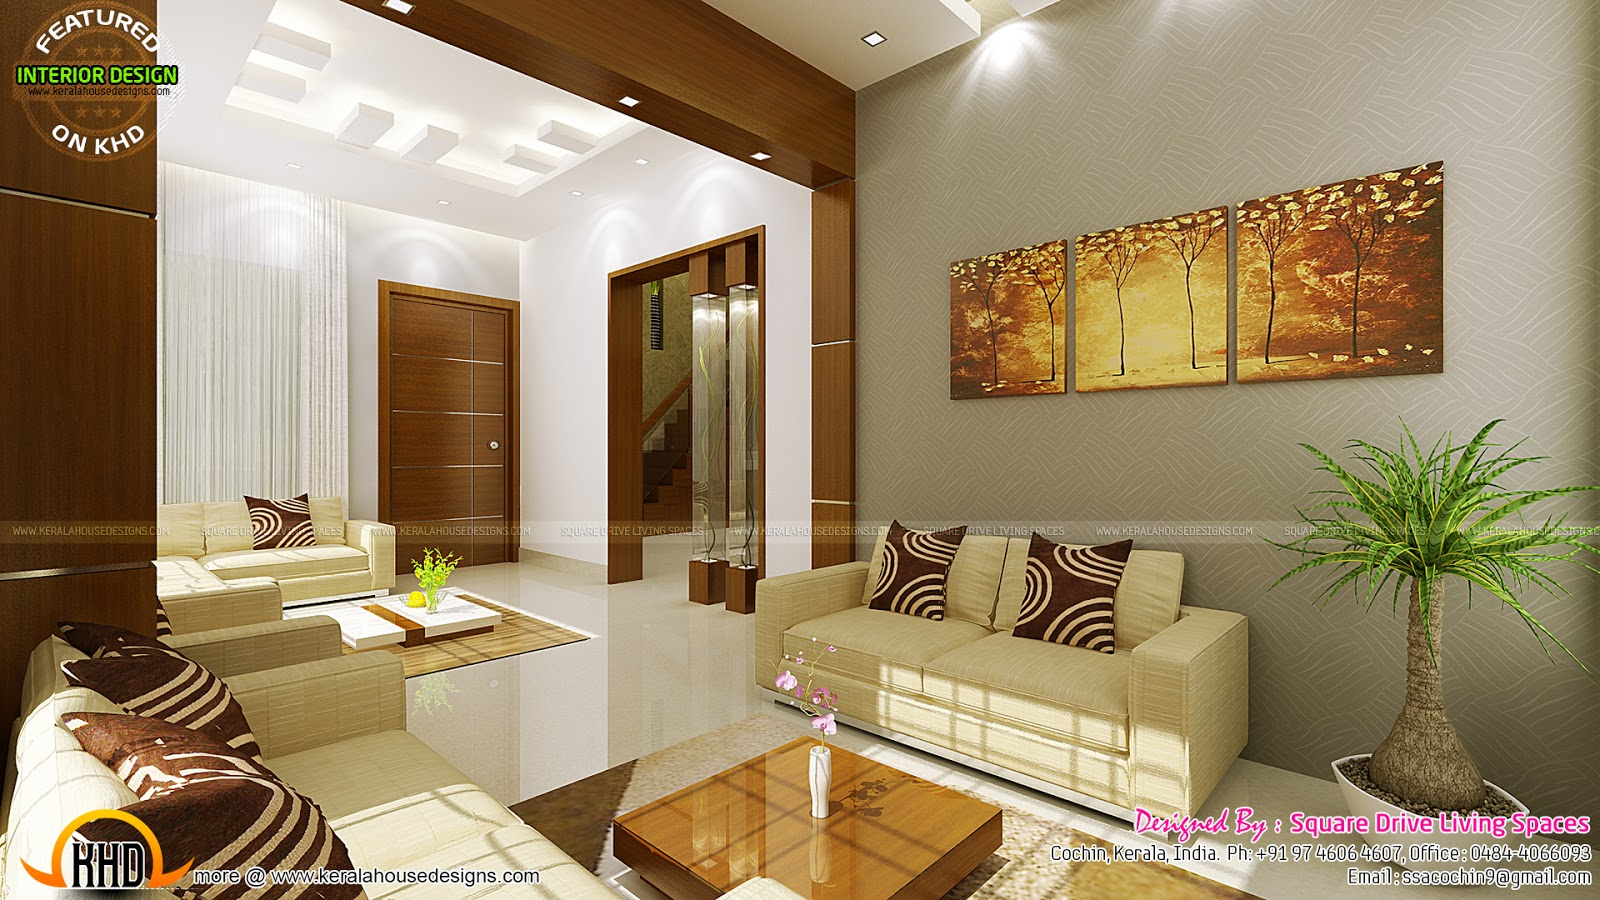 Contemporary kitchen dining and living room kerala home for House interior design living room